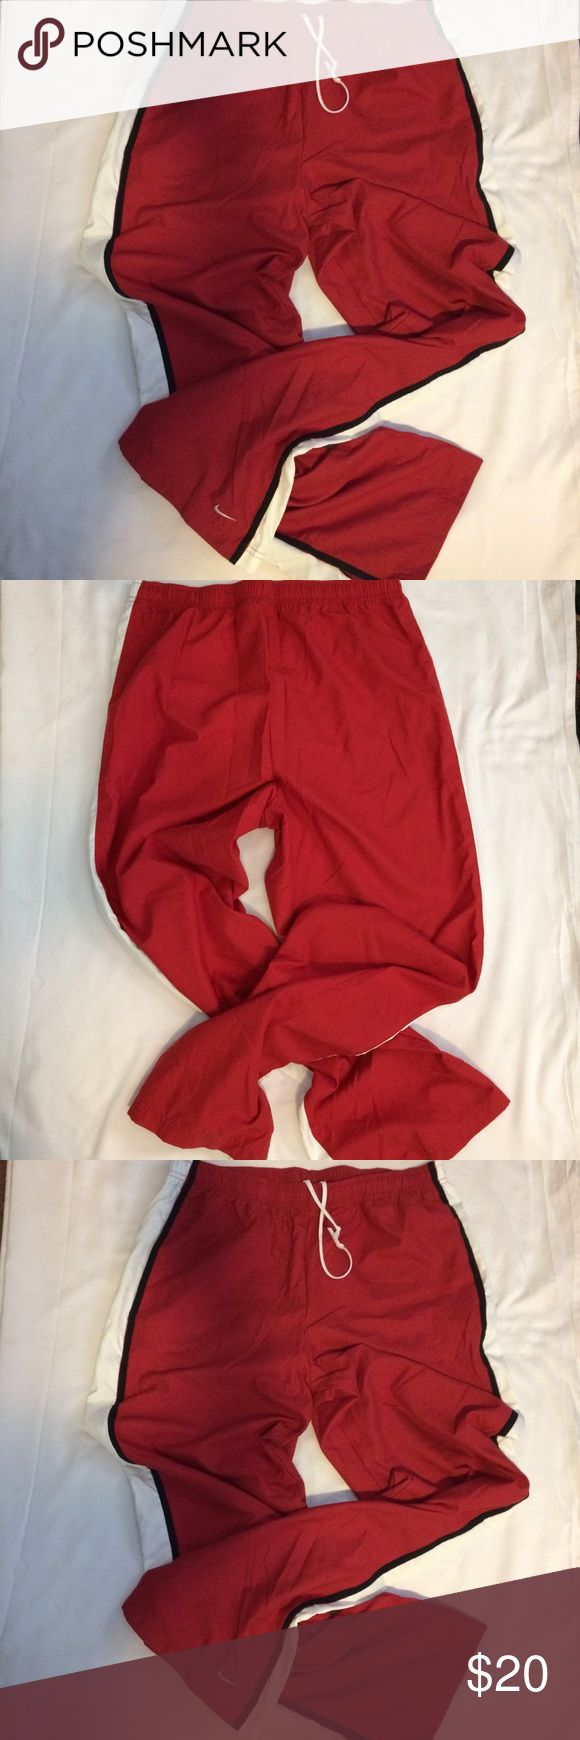 Nike Ladies Joggers Sz L 12-14 Preowned Great Condition Women's Pants Nike Pants Track Pants & Joggers